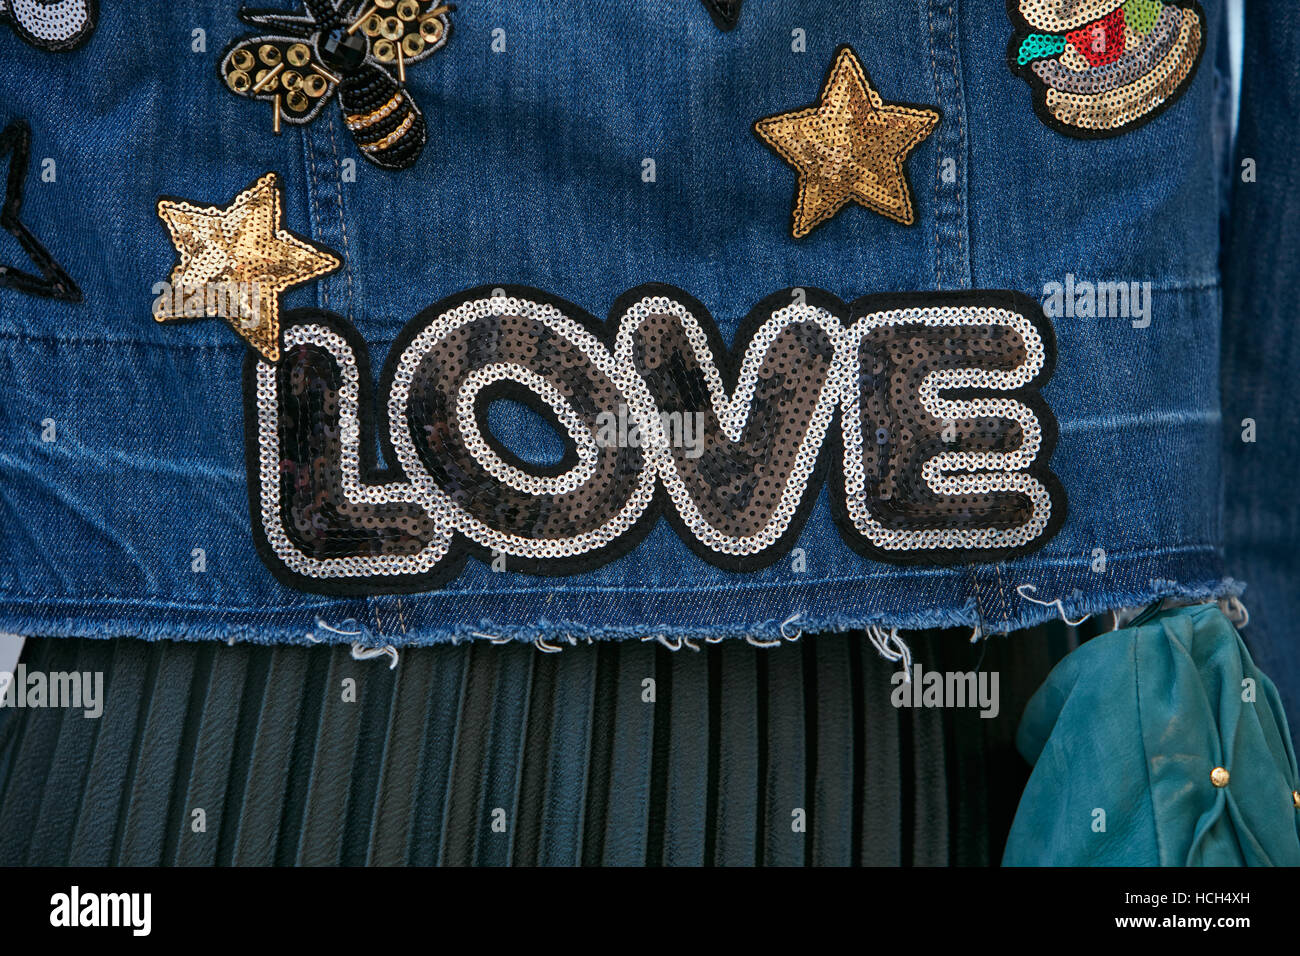 Woman with blue jeans jacket with Love sequin writing before Giamba fashion show, Milan Fashion Week street style - Stock Image